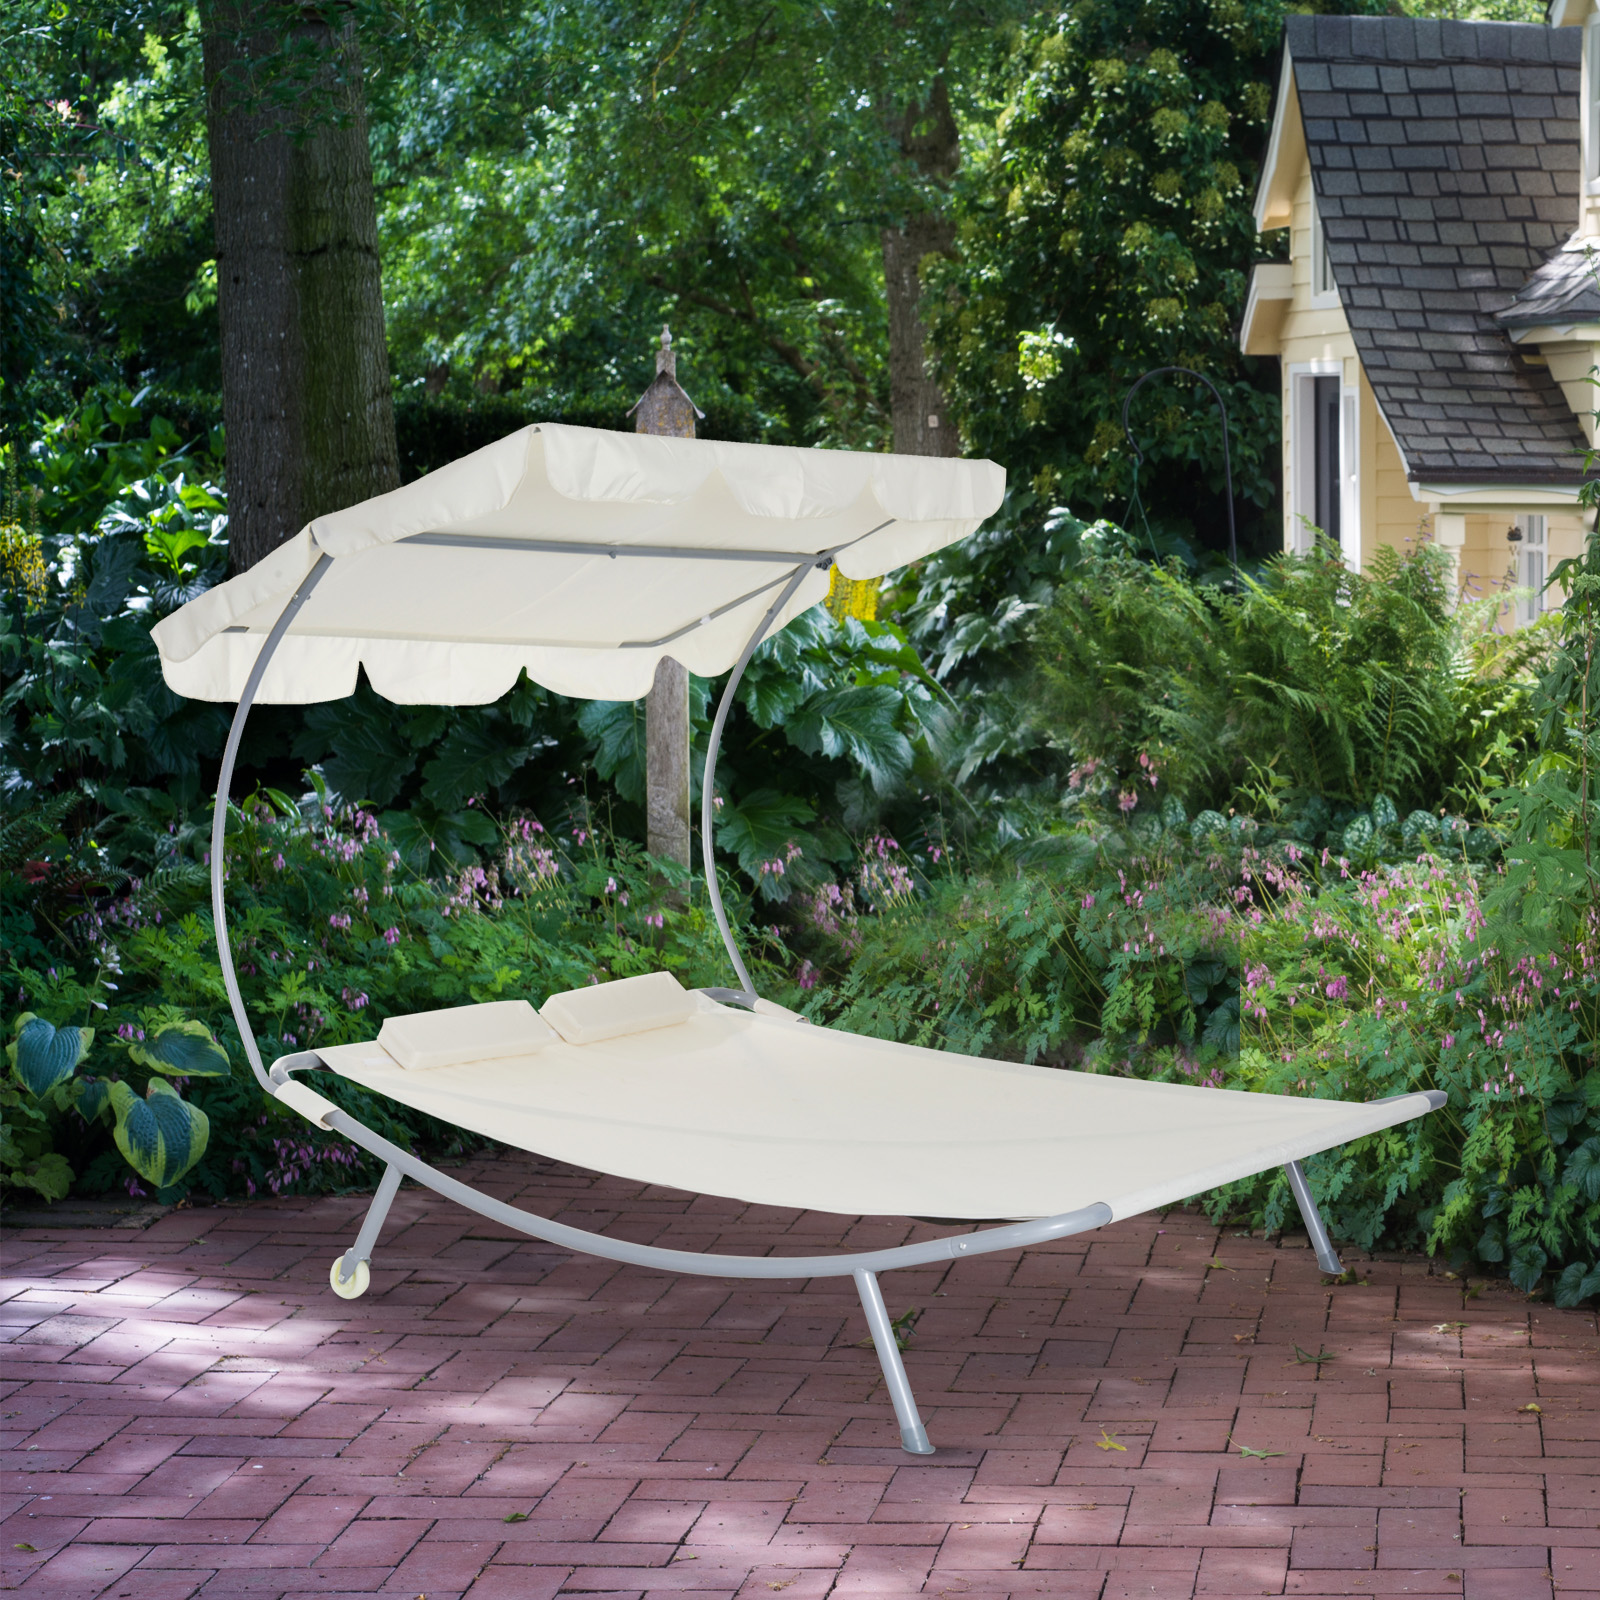 Outdoor Double Chaise Lounge Patio Hammock Sunbed Lounger